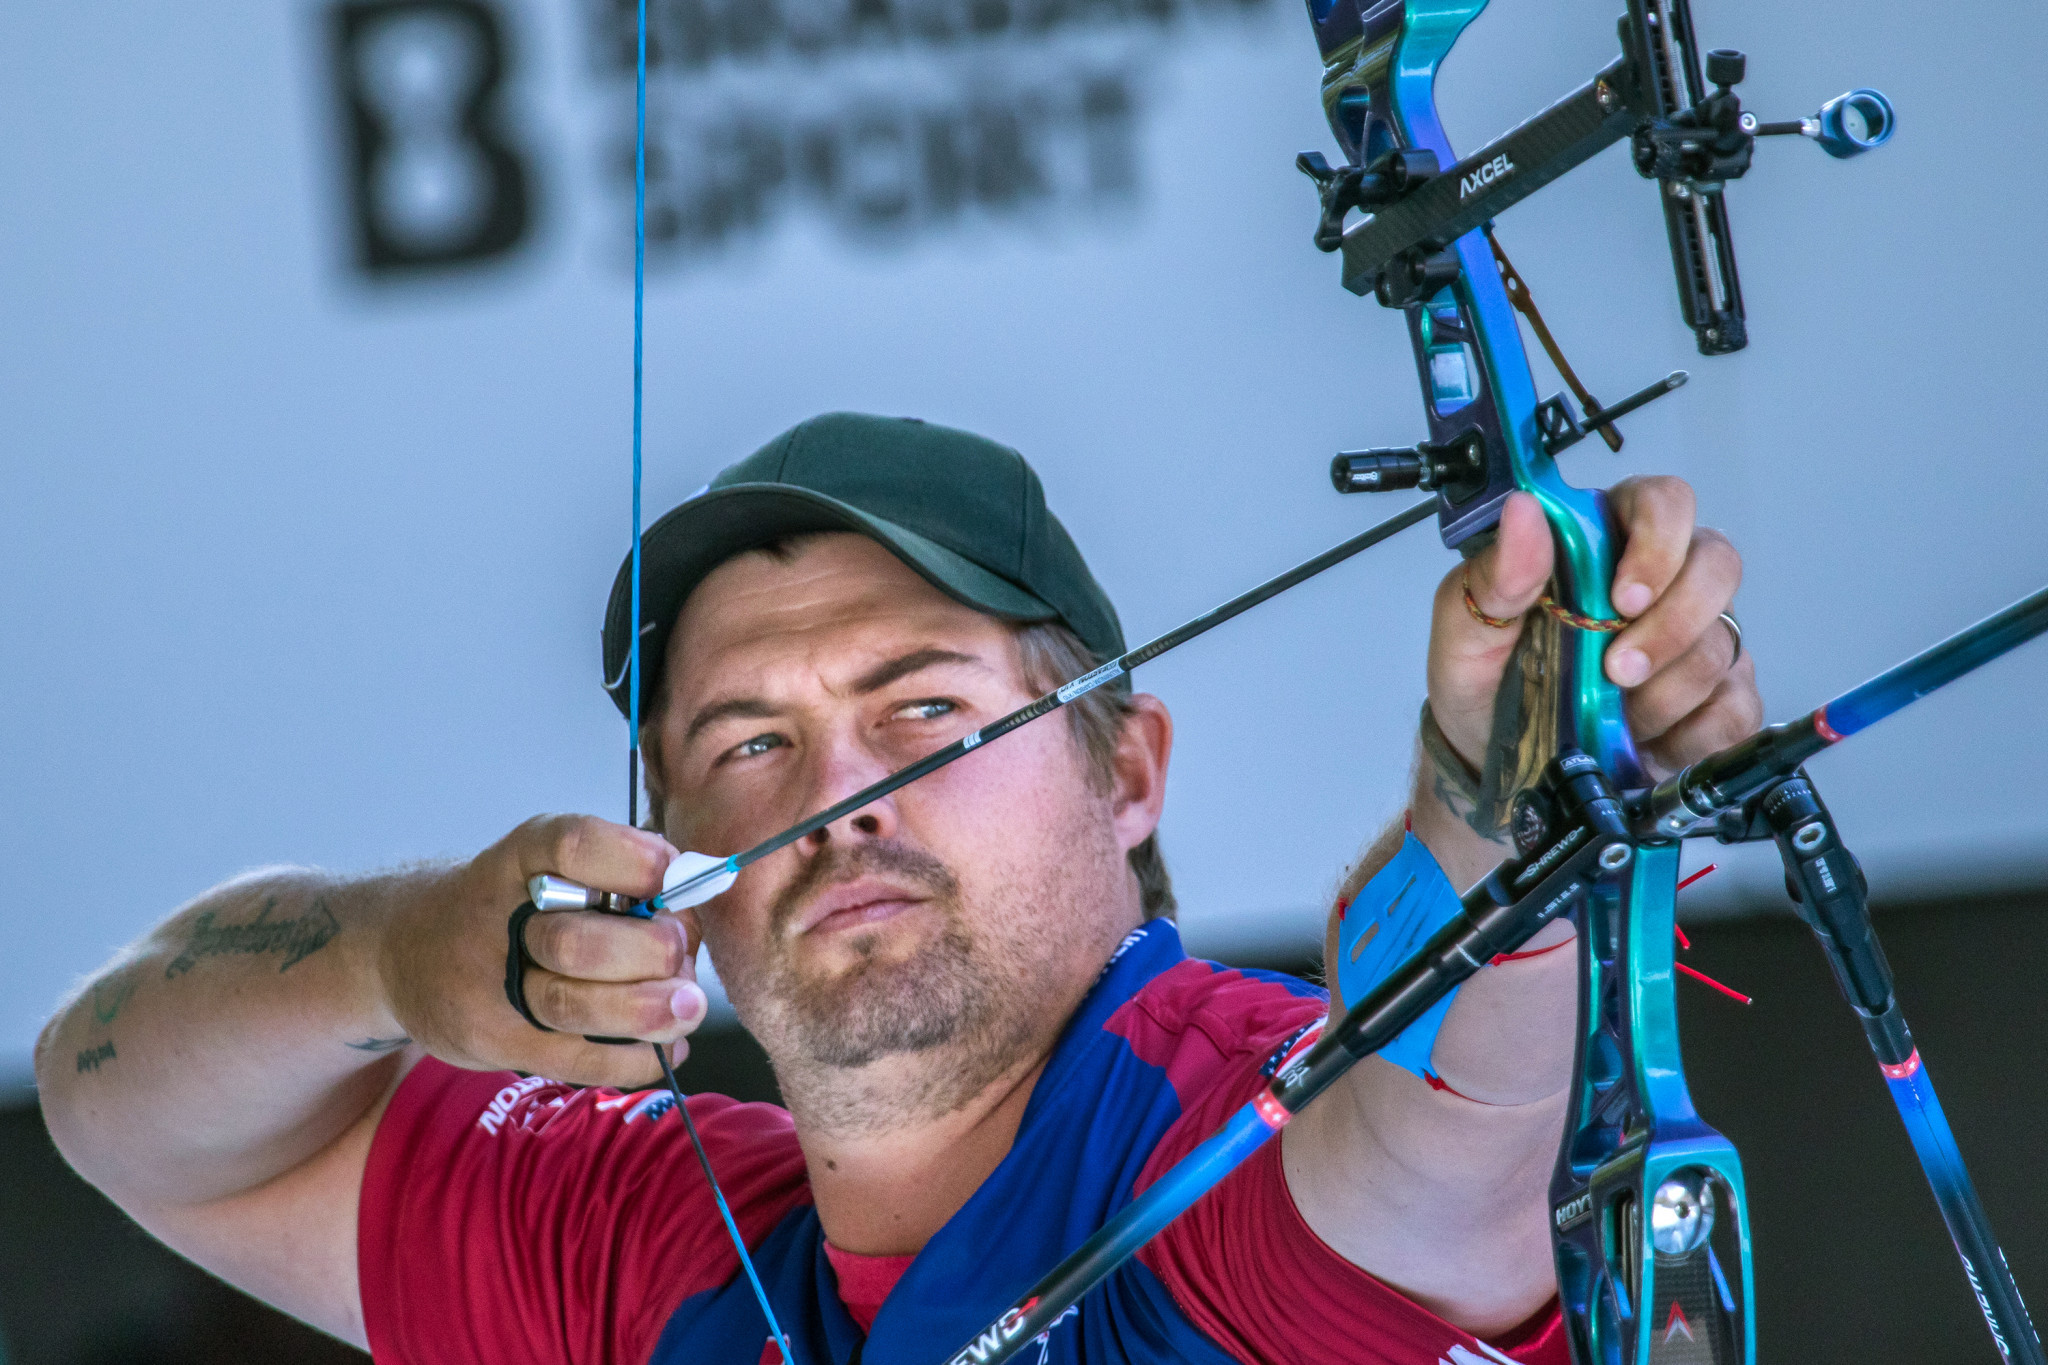 Brady Ellison became the first American man to win the recurve gold medal at the World Championships since 1985, an achievement recognised in the United States Olympic and Paralympic Committee Best of June awards. ©Getty Images